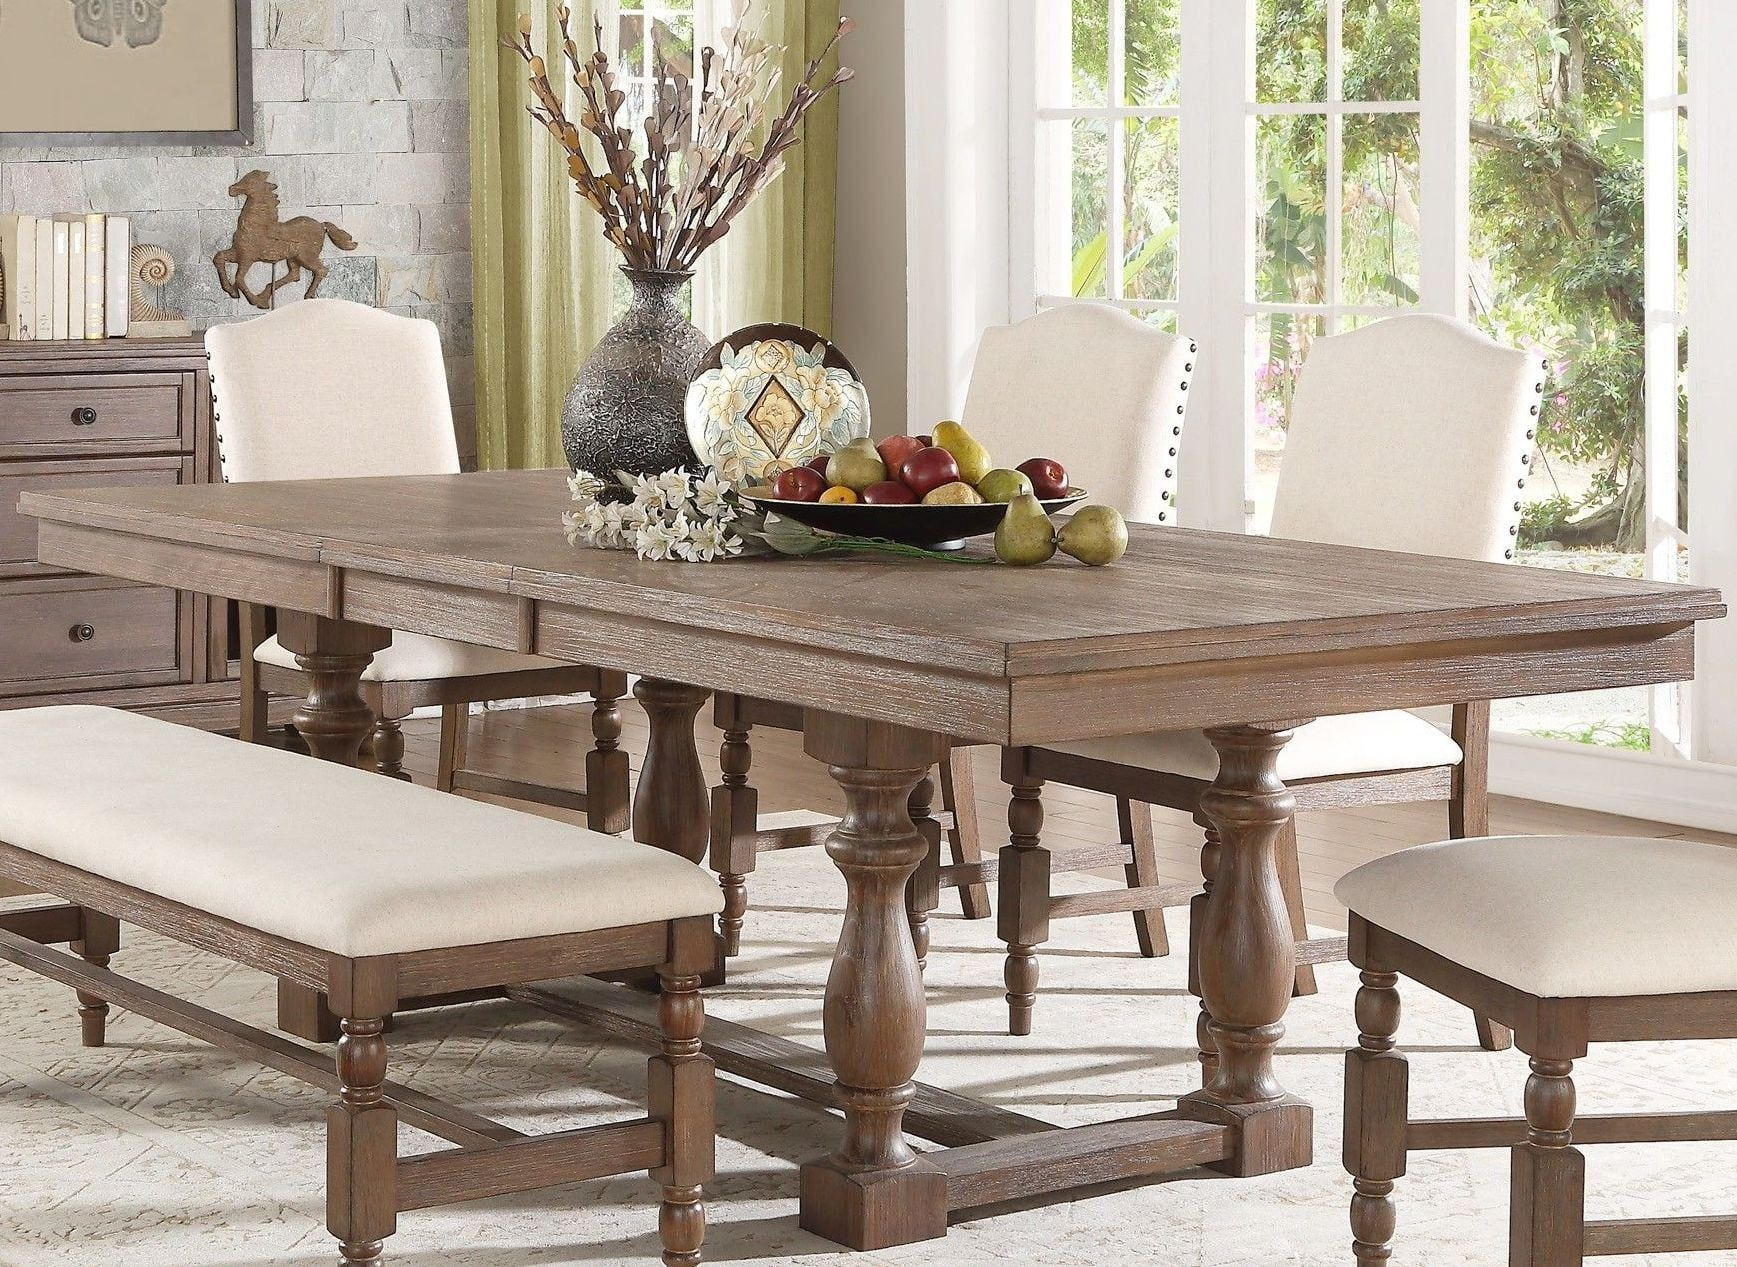 Cinema Grays Oval Extendable Dining Table From Racheal Ray Home